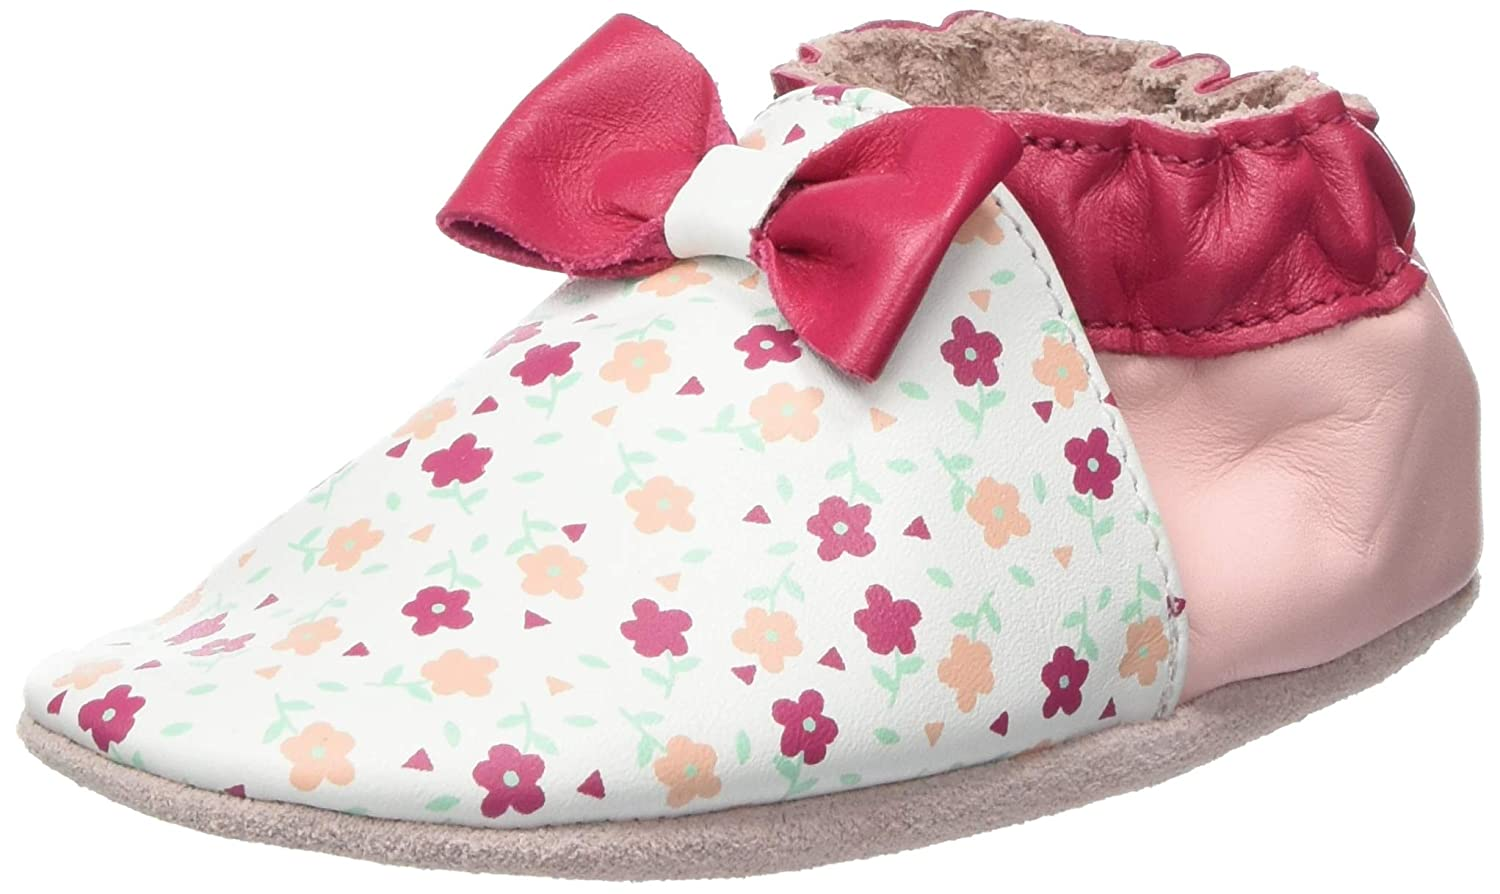 Robeez Flowery Printed White Leather Baby Soft Soles Shoes